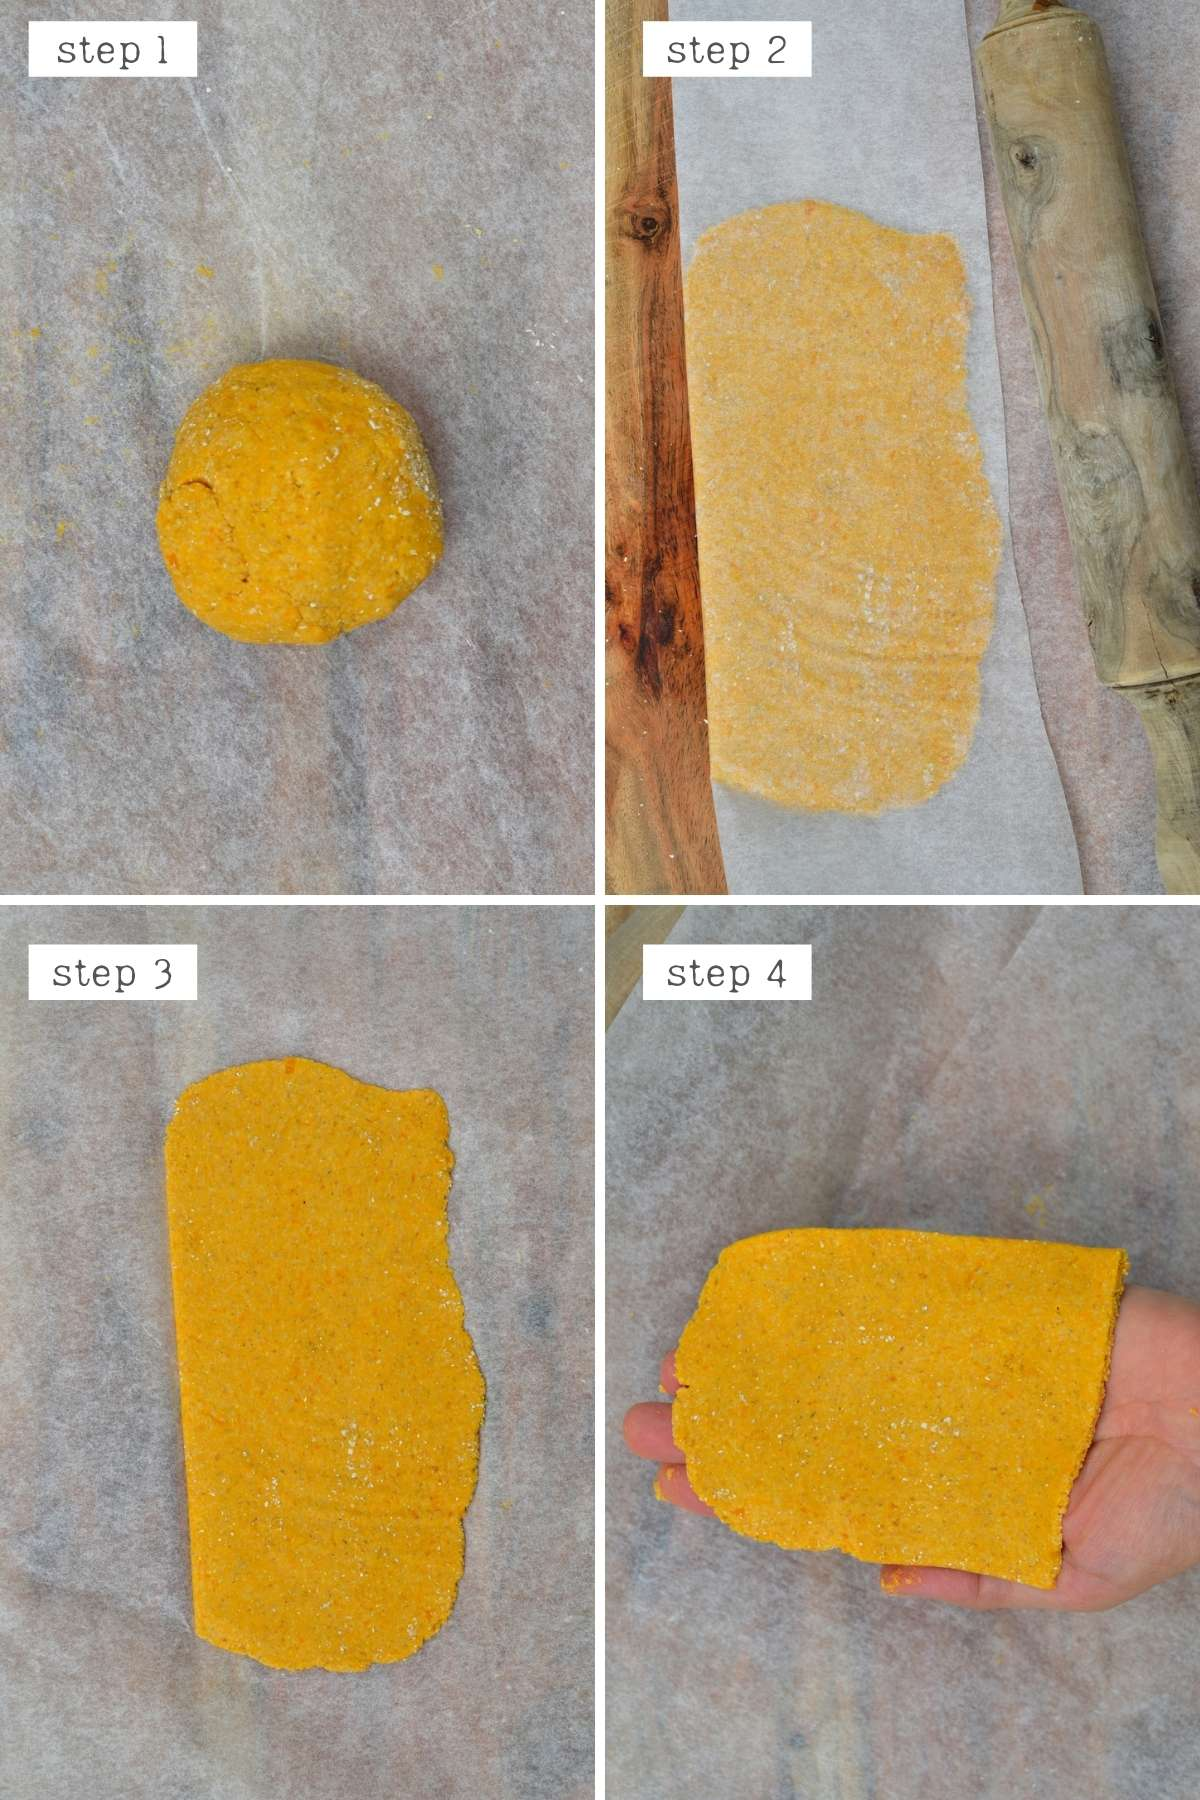 Steps for rolling sweet potato flatbread